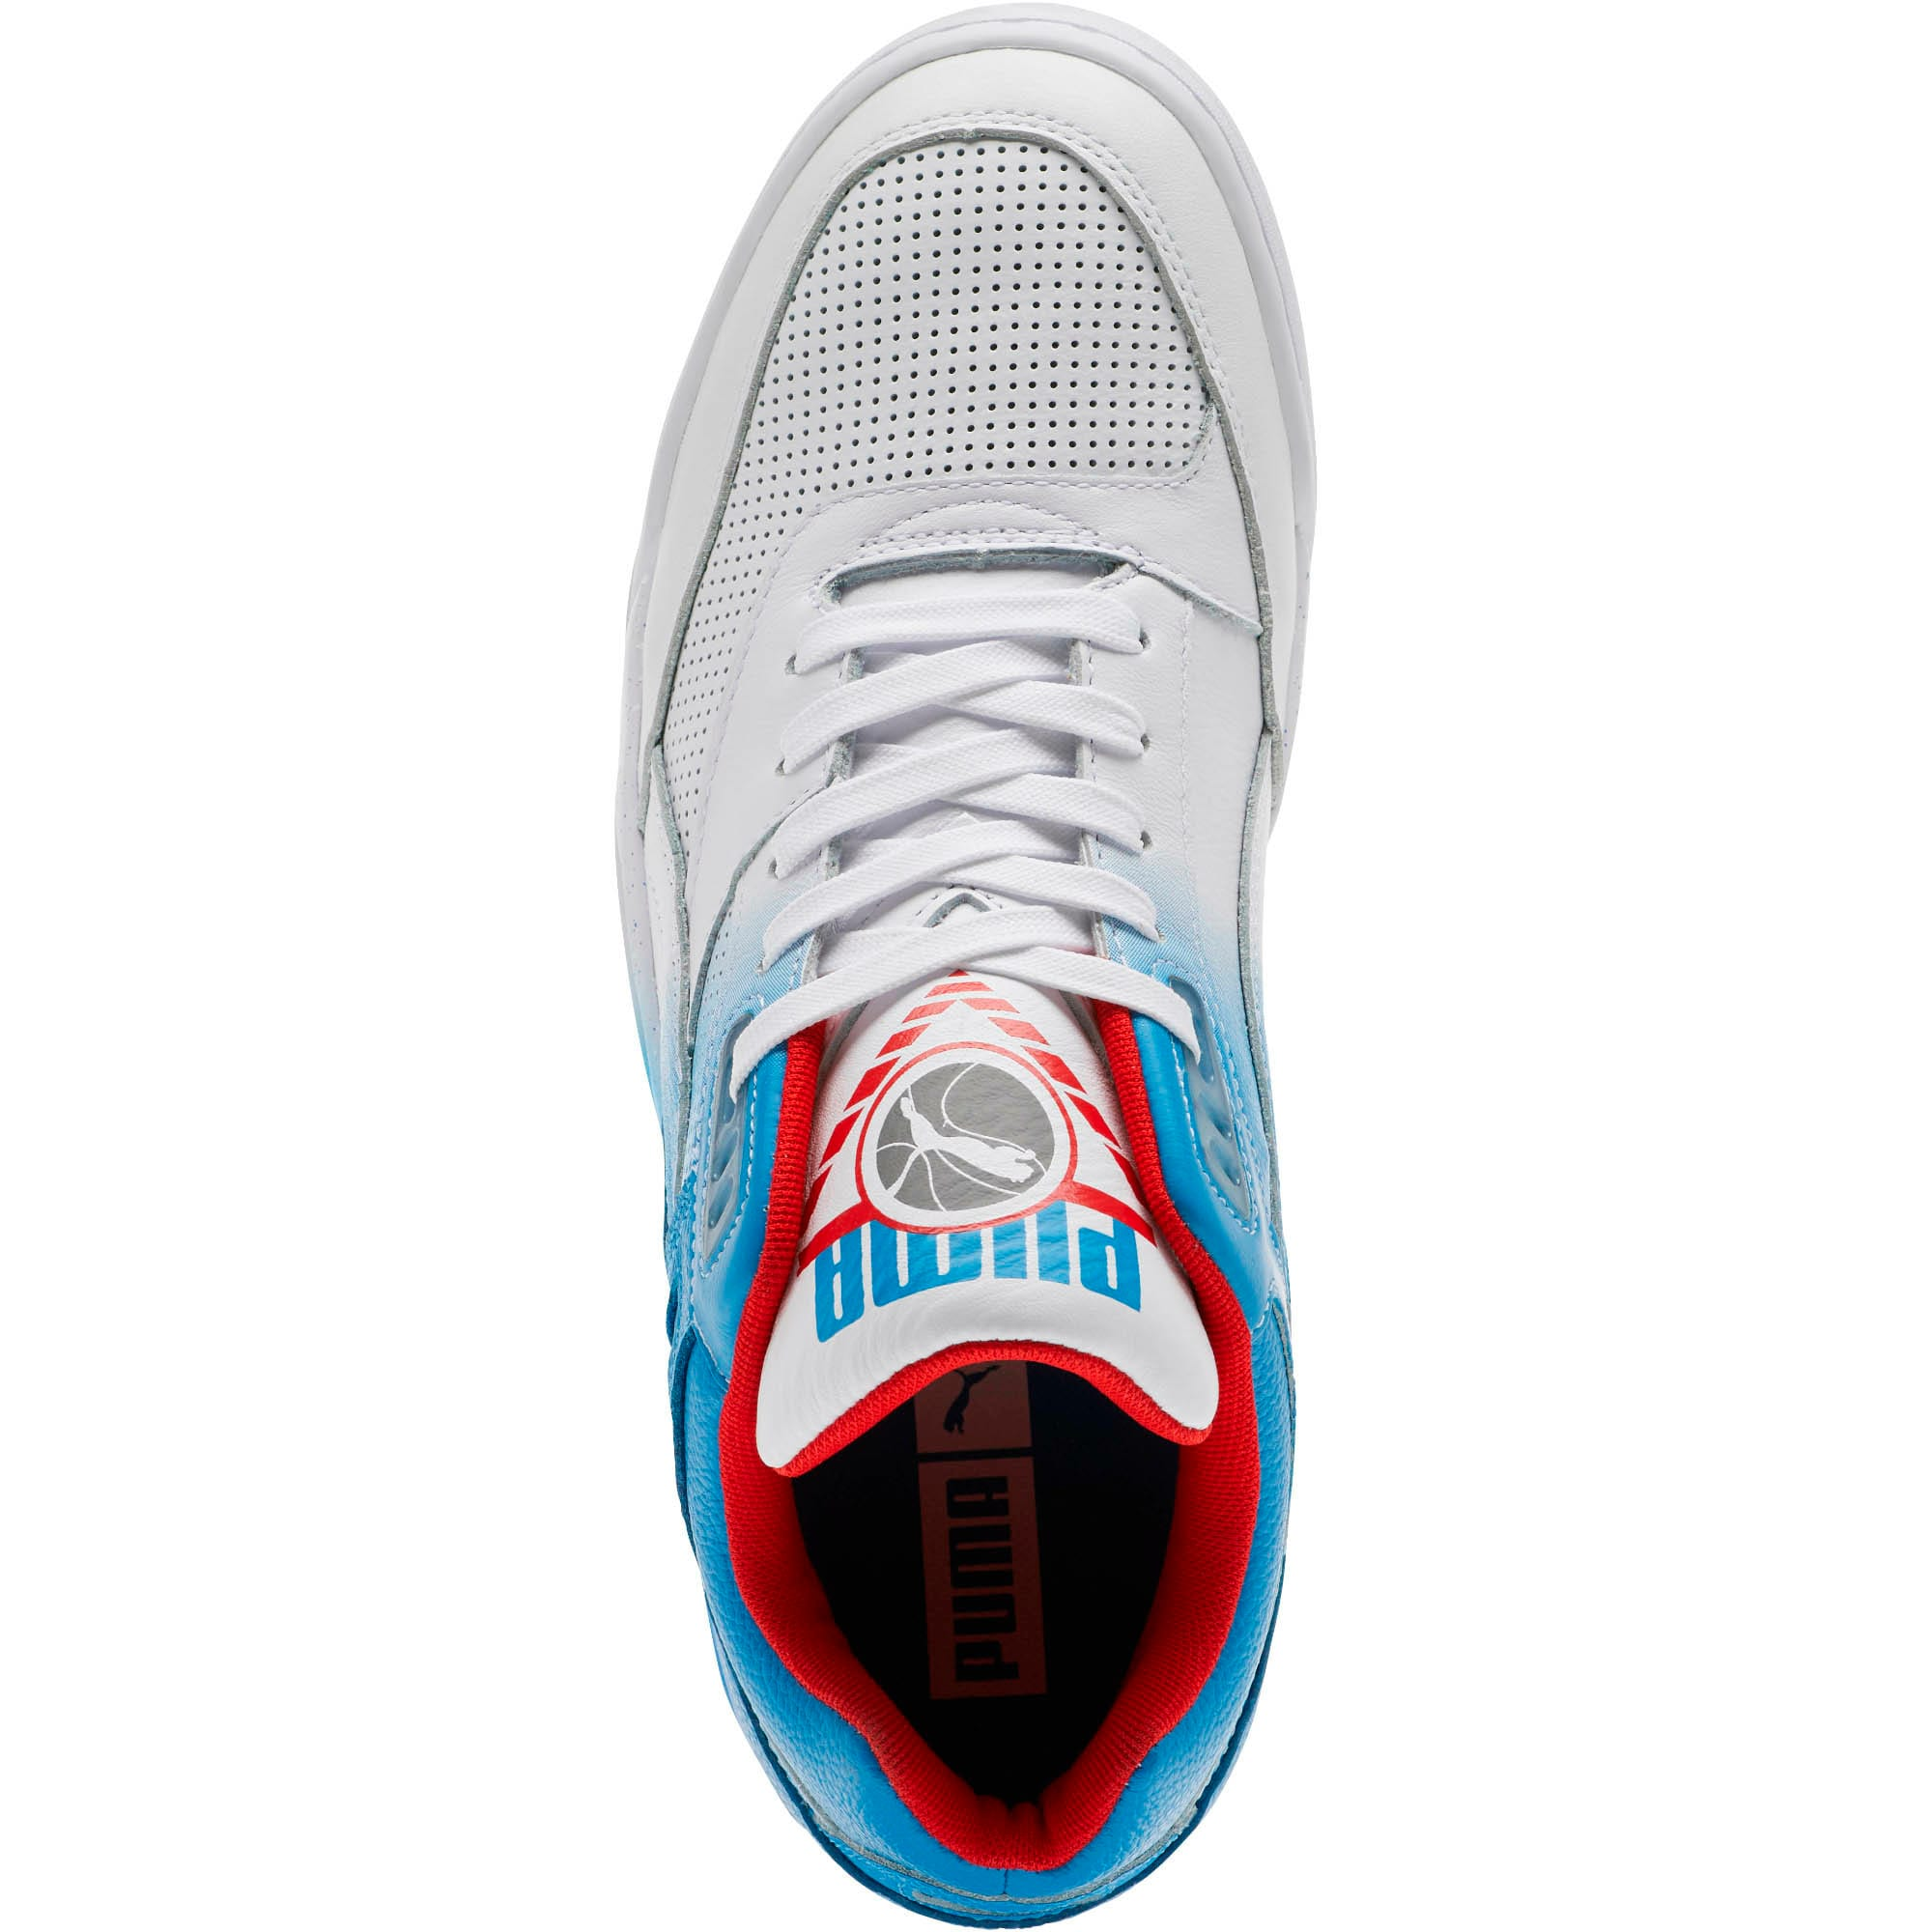 Palace Guard Retro Sneakers, White-Indigo-Red, large